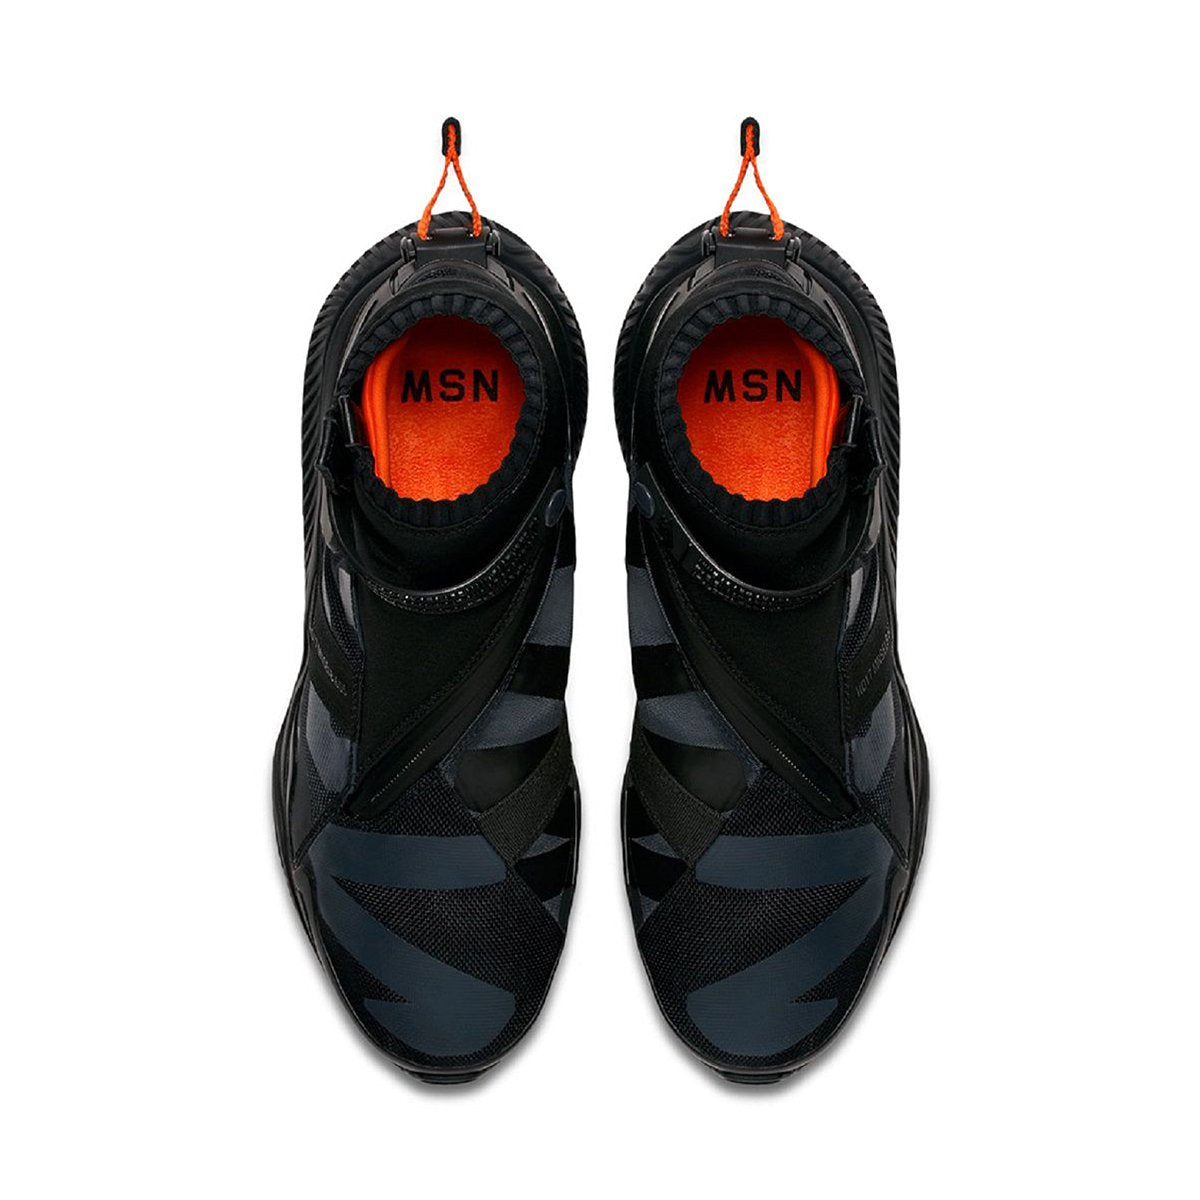 size 40 7e604 23ff1 Nike Gaiter Boot (Black Black-Anthracite-Team Orange)